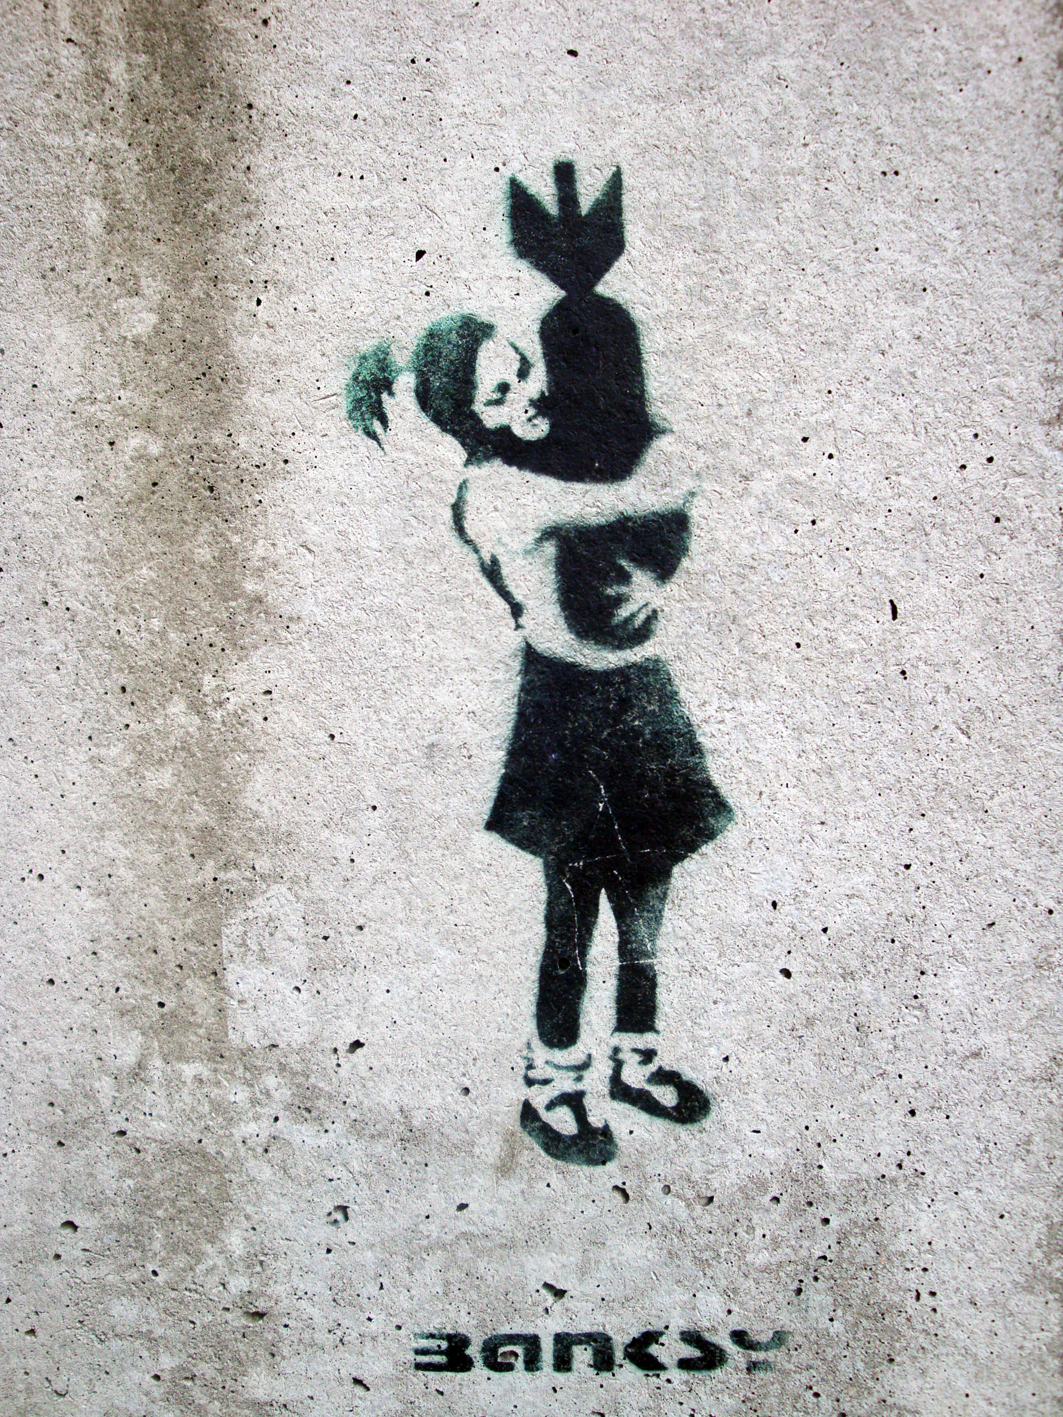 banksy_in_hamburg_small.jpg